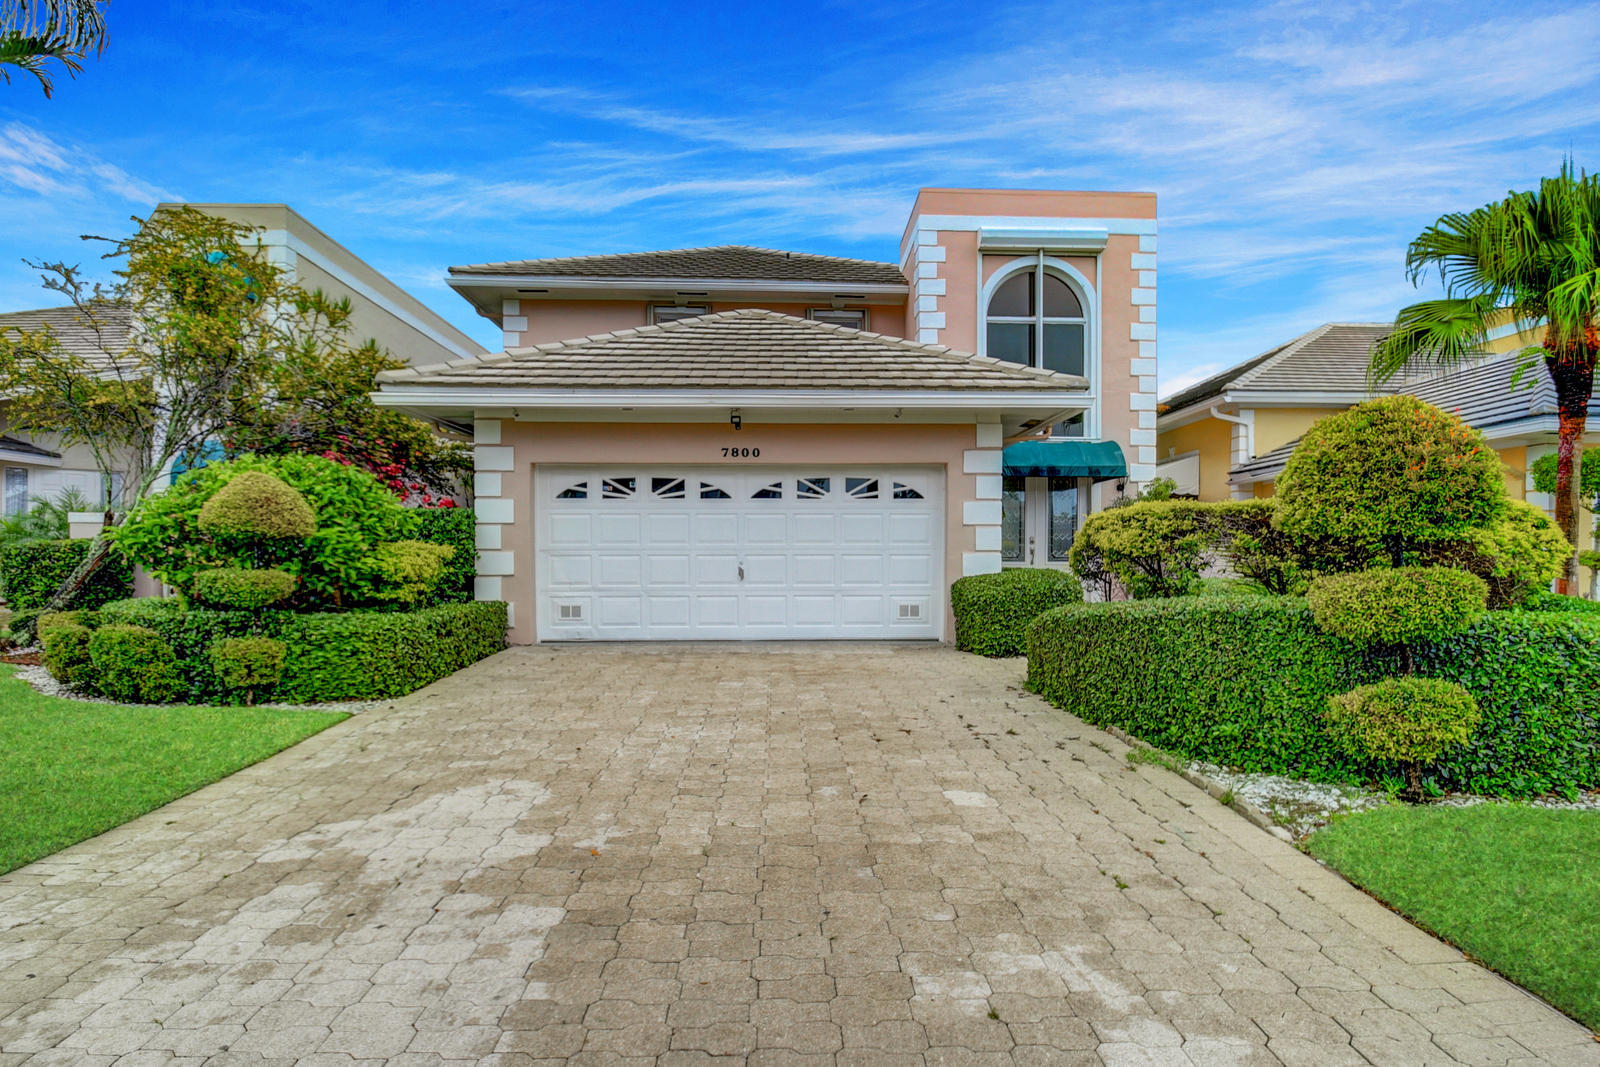 Photo of 7800 Travelers Tree Drive, Boca Raton, FL 33433